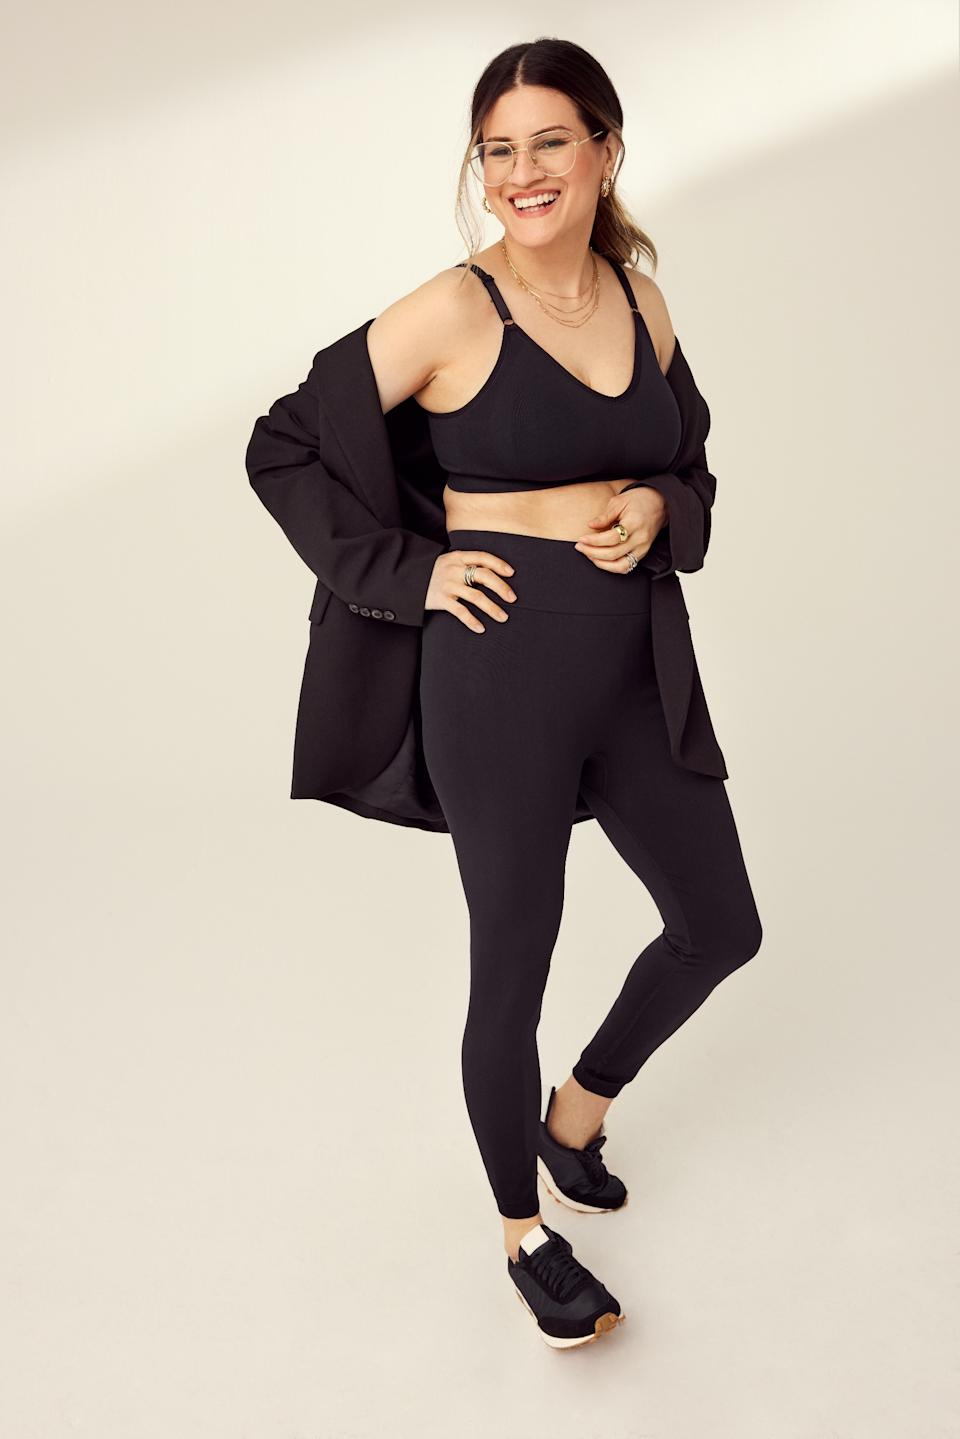 The Good to Go Seamless Bra and Leggings from Knix in Black.